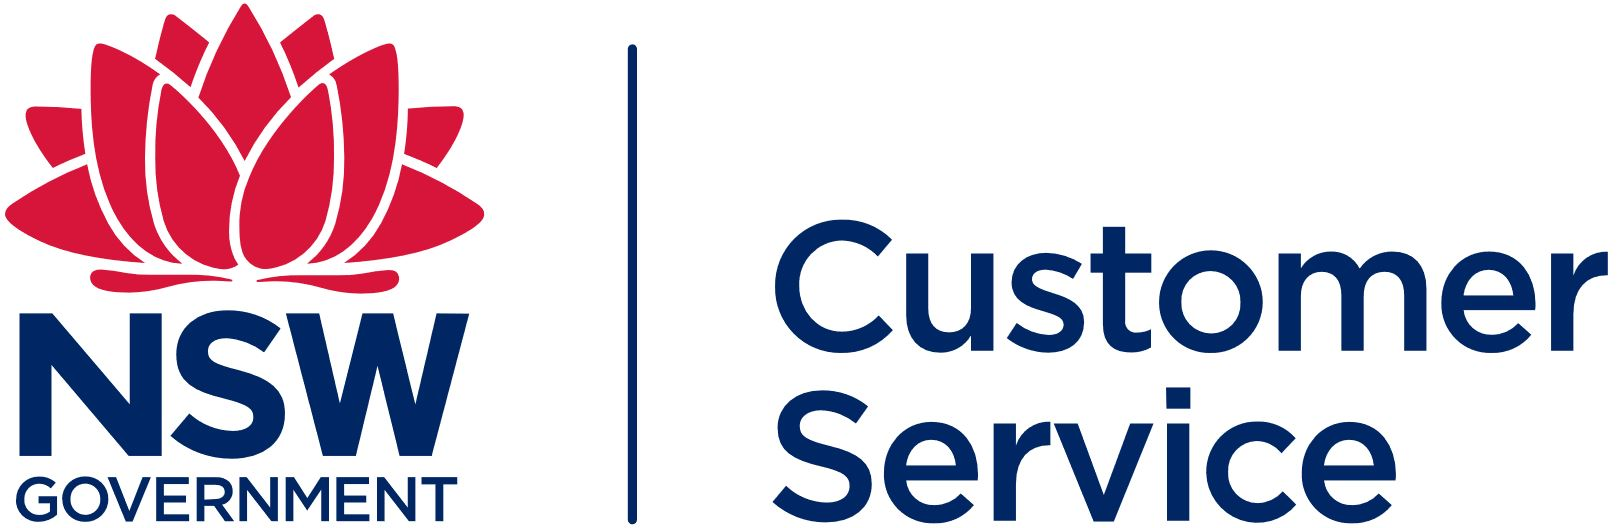 NSW Department of Customer Service Logo.JPG